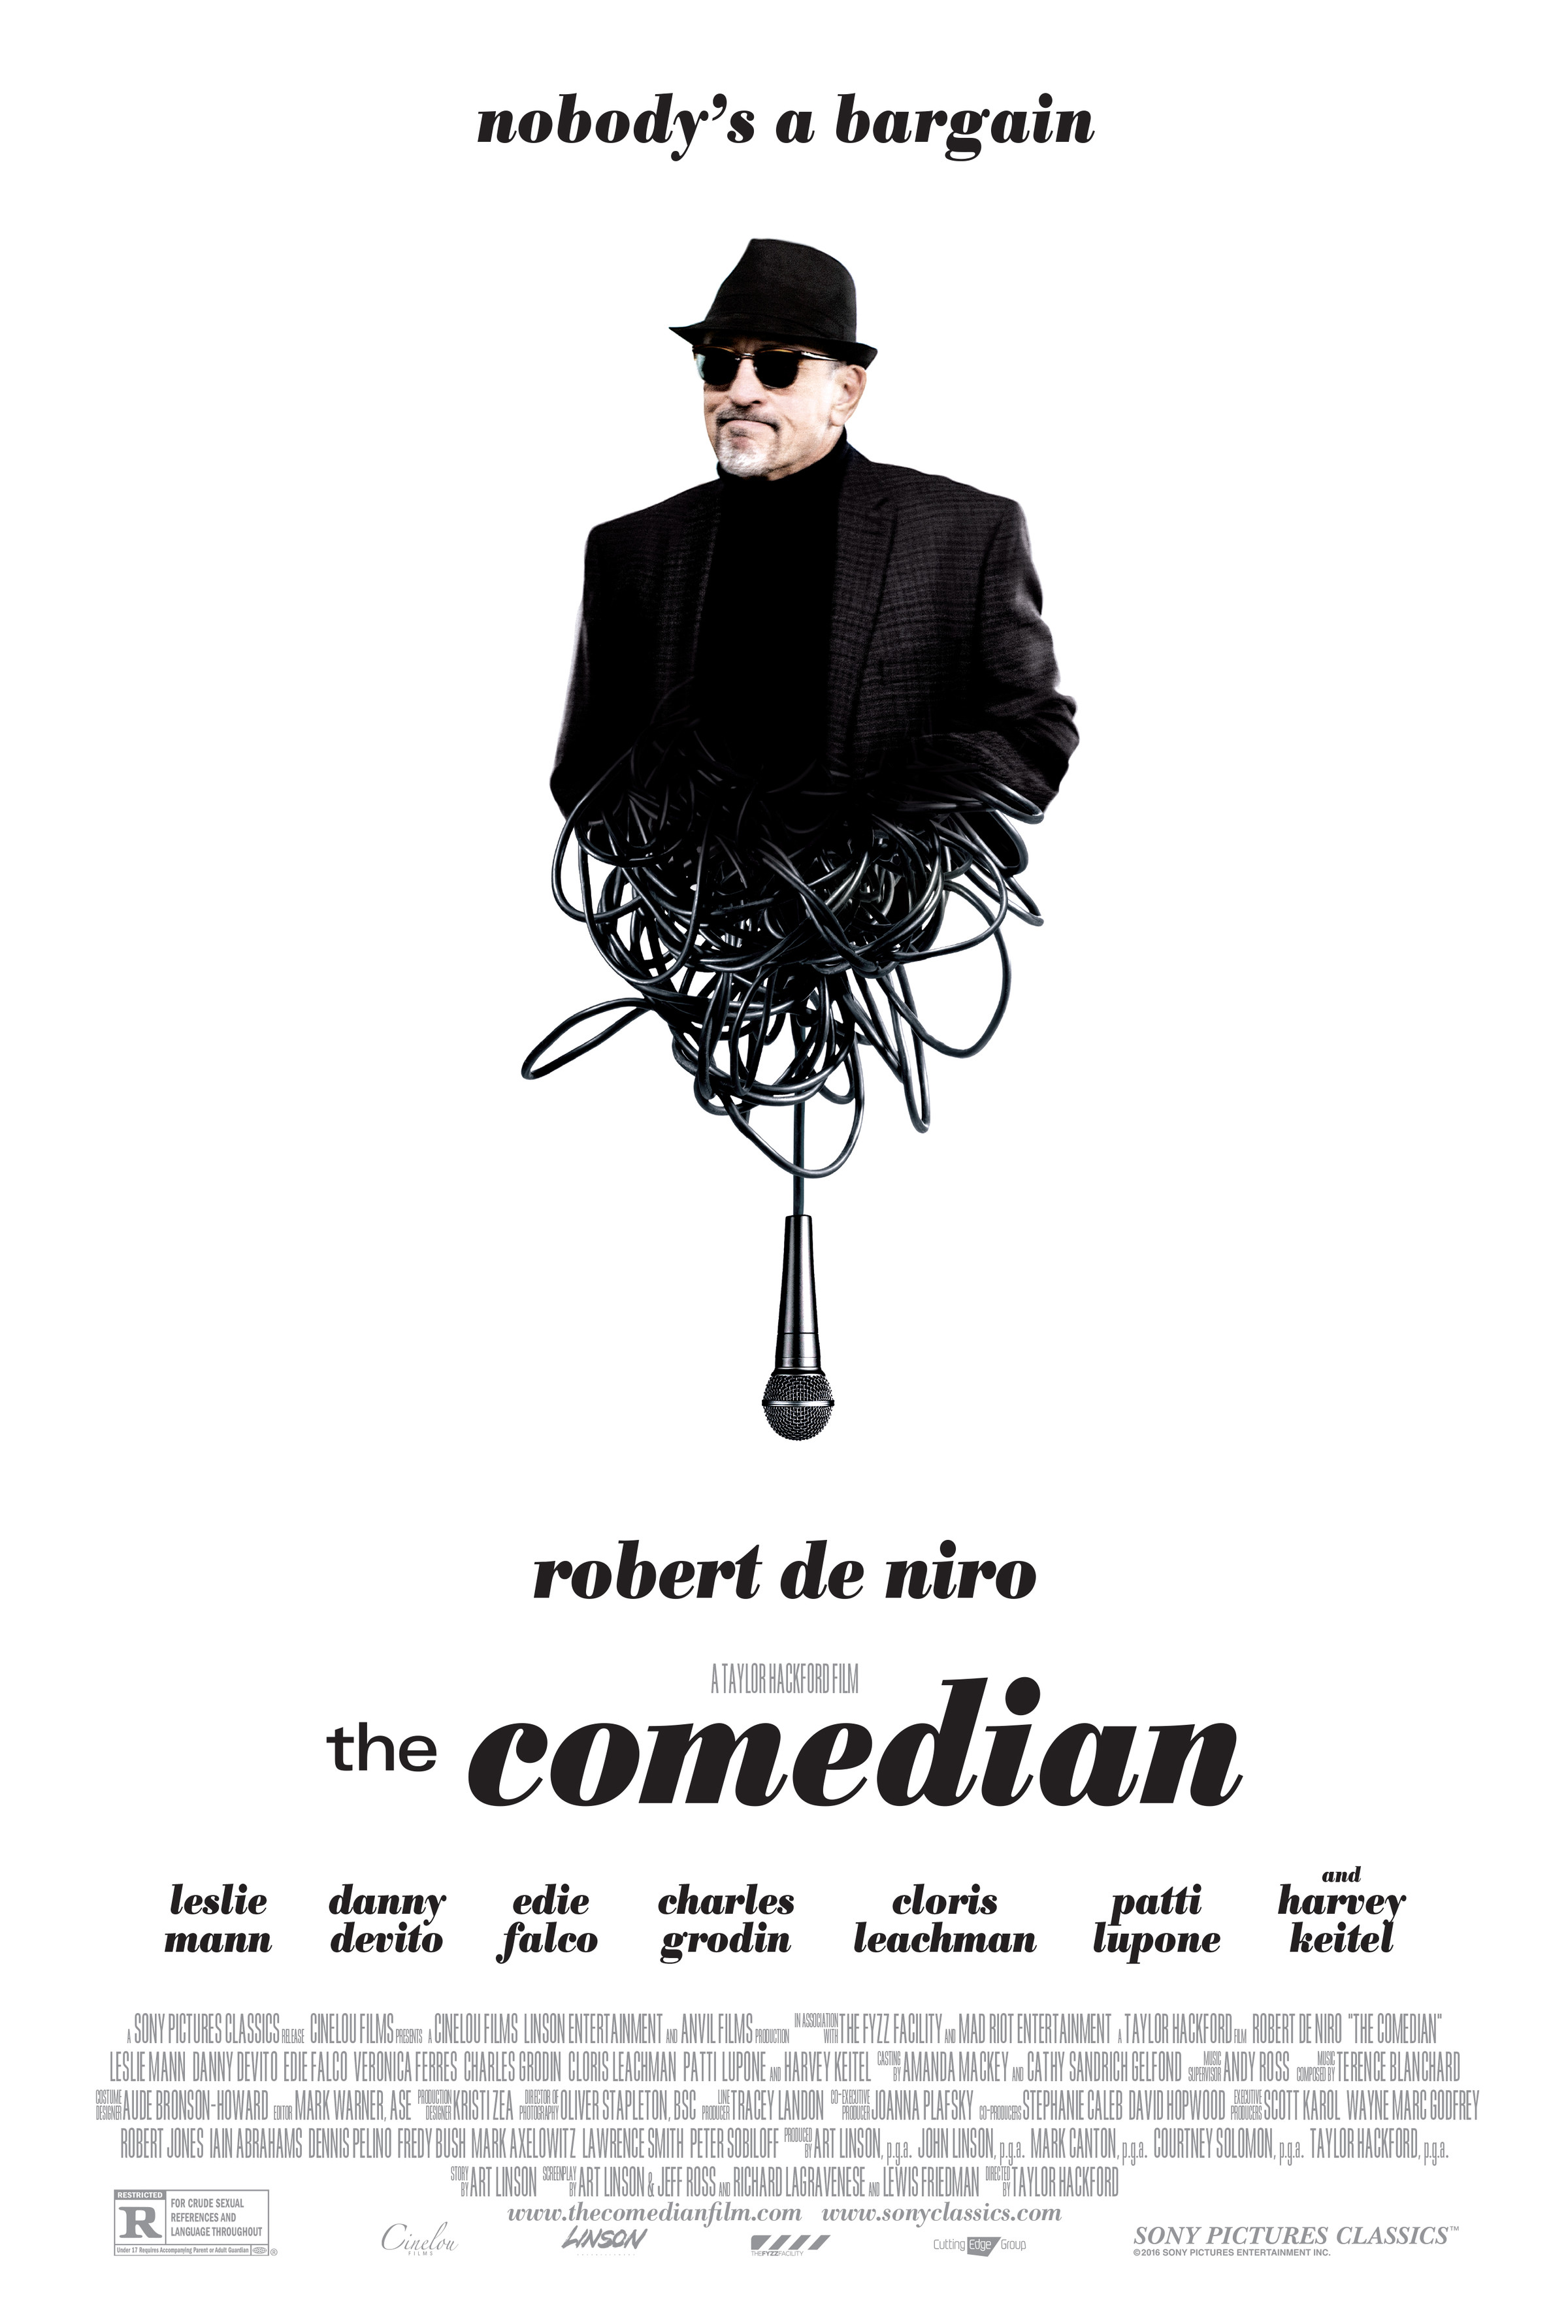 The Comedian Details And Credits